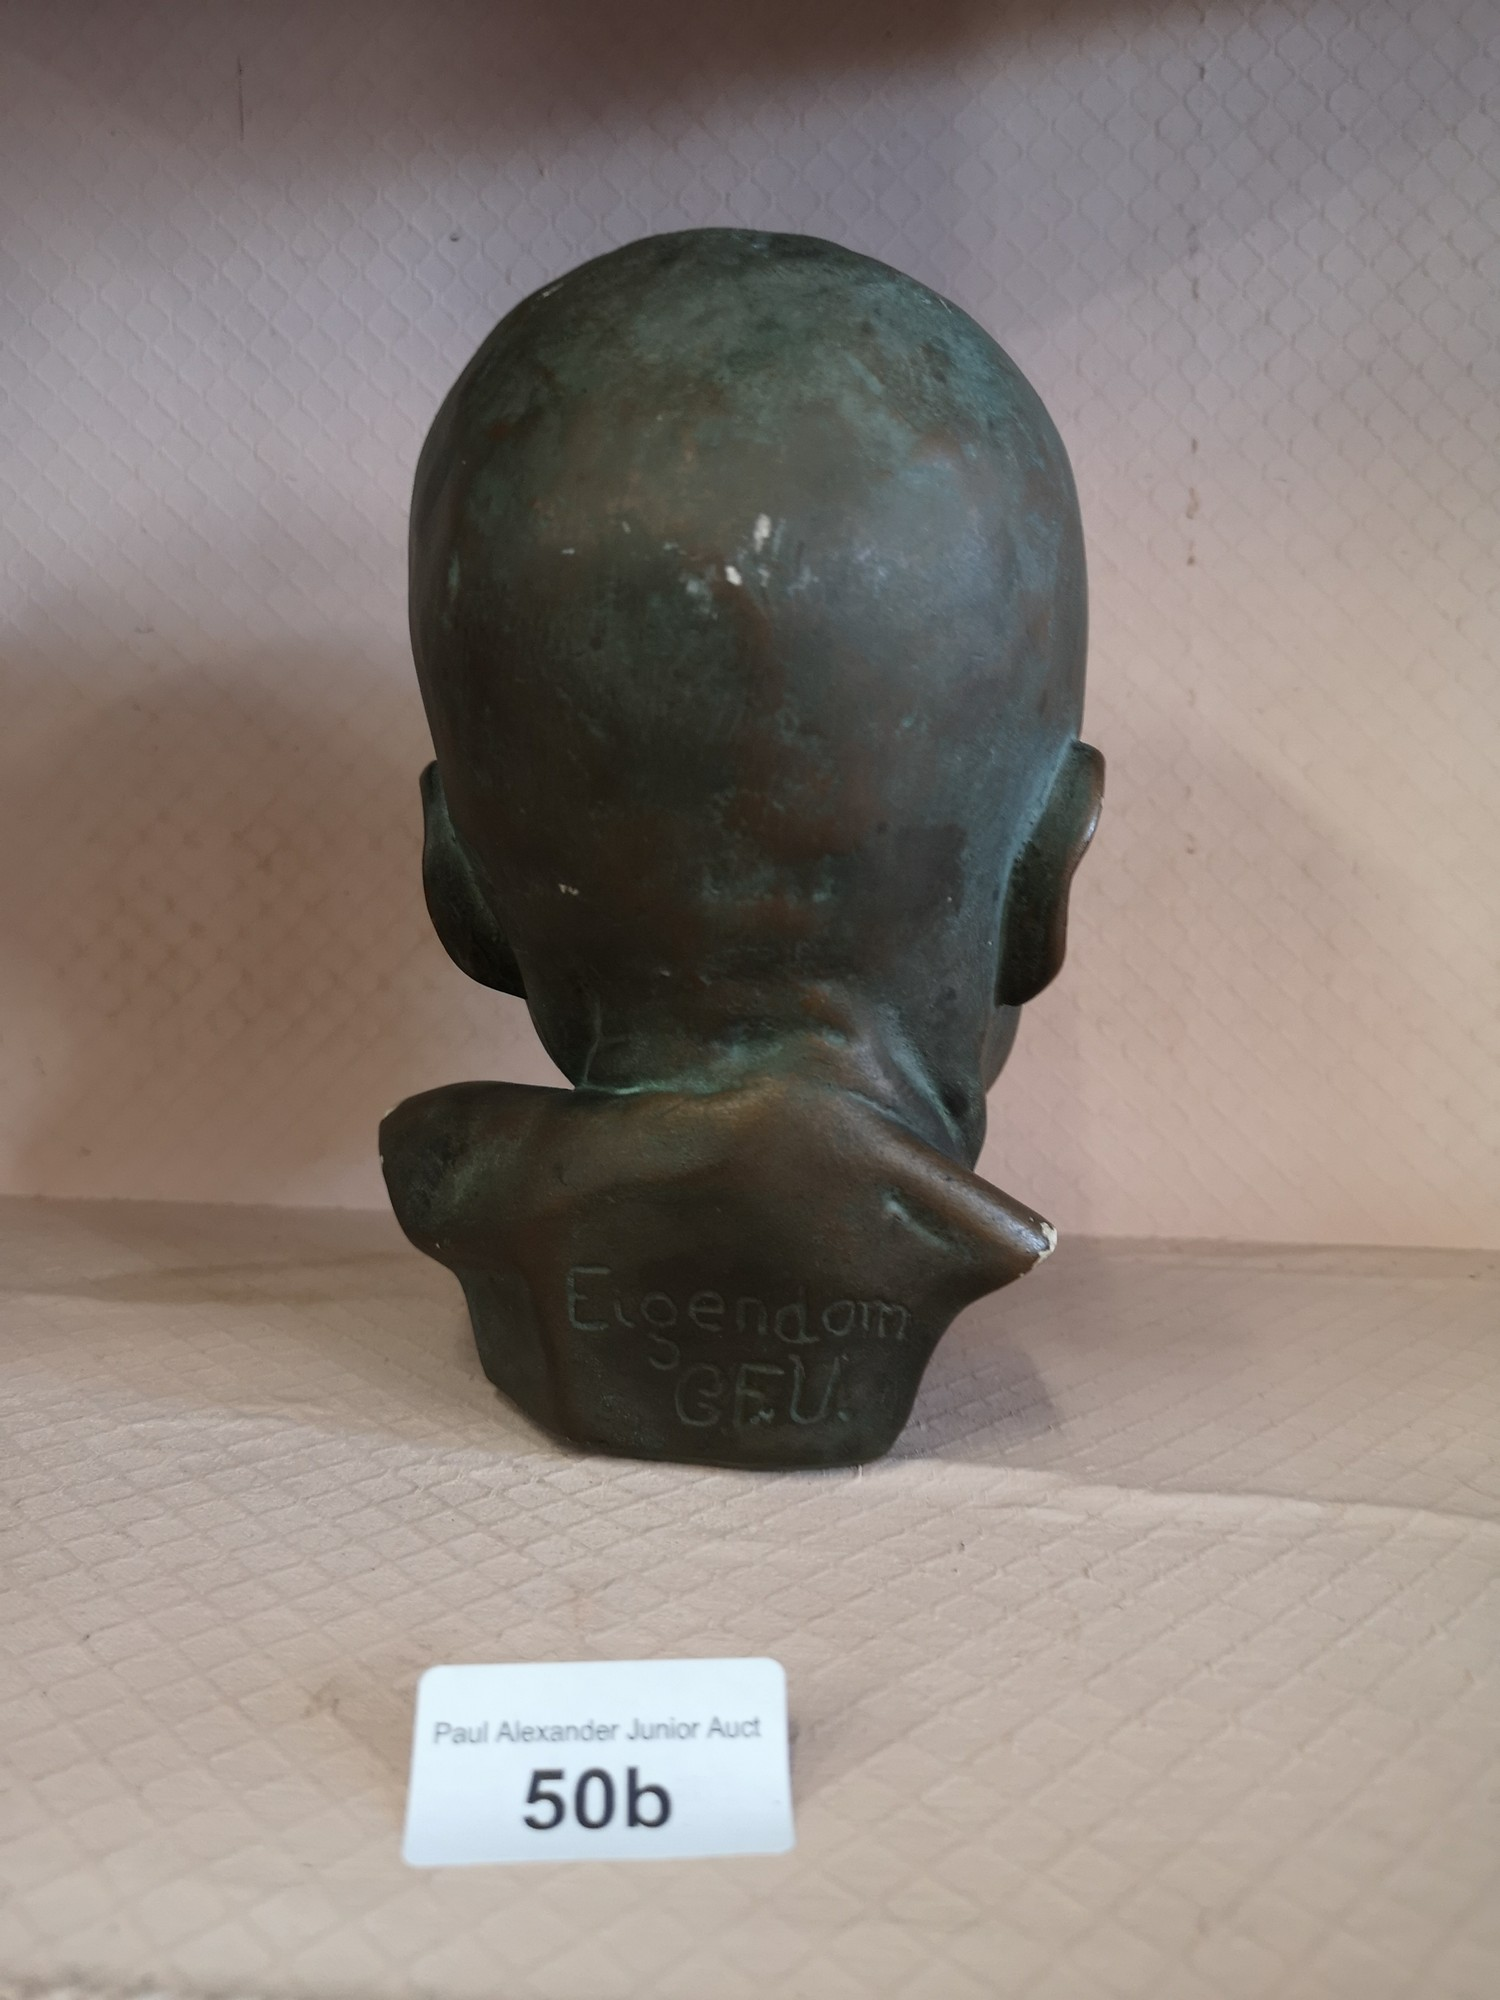 Eigendorn signed sculpture head with GFU intials. - Image 4 of 5